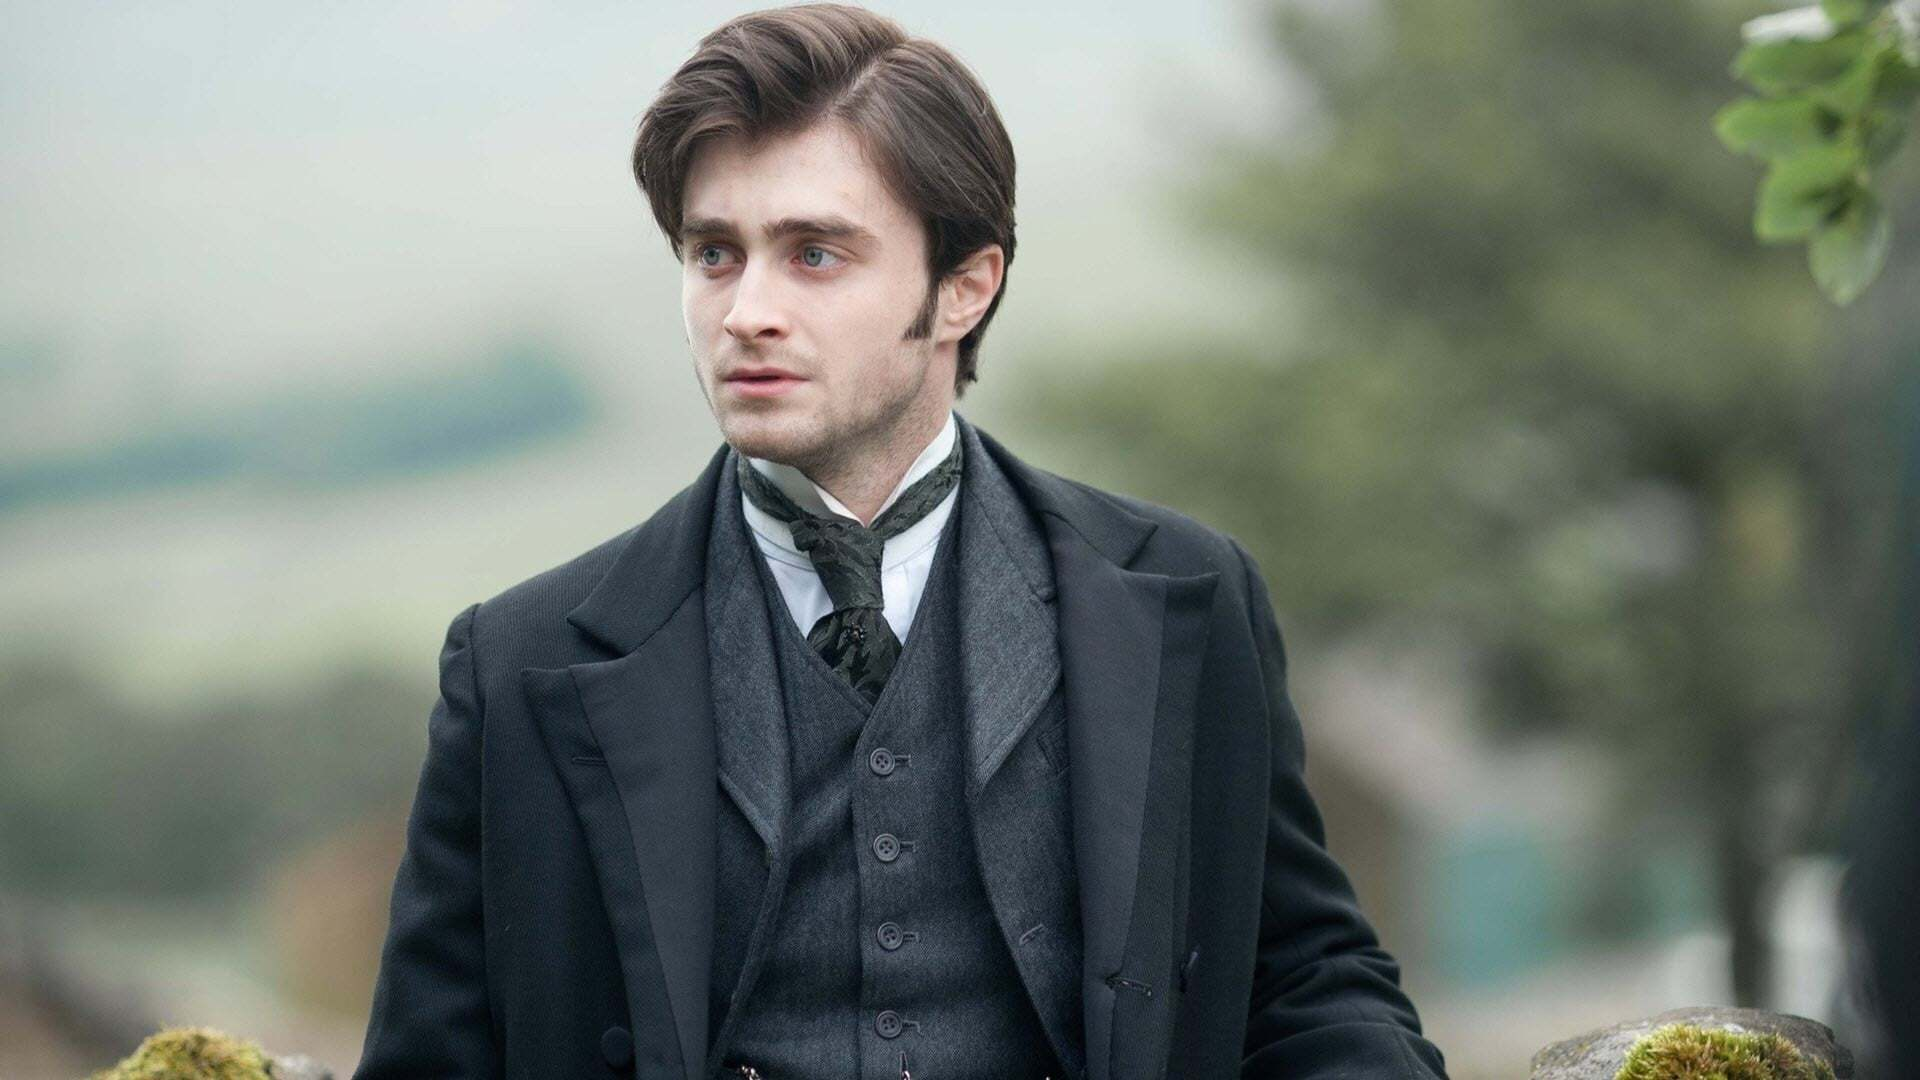 Daniel Radcliffe The Haunting Of Bly Manor